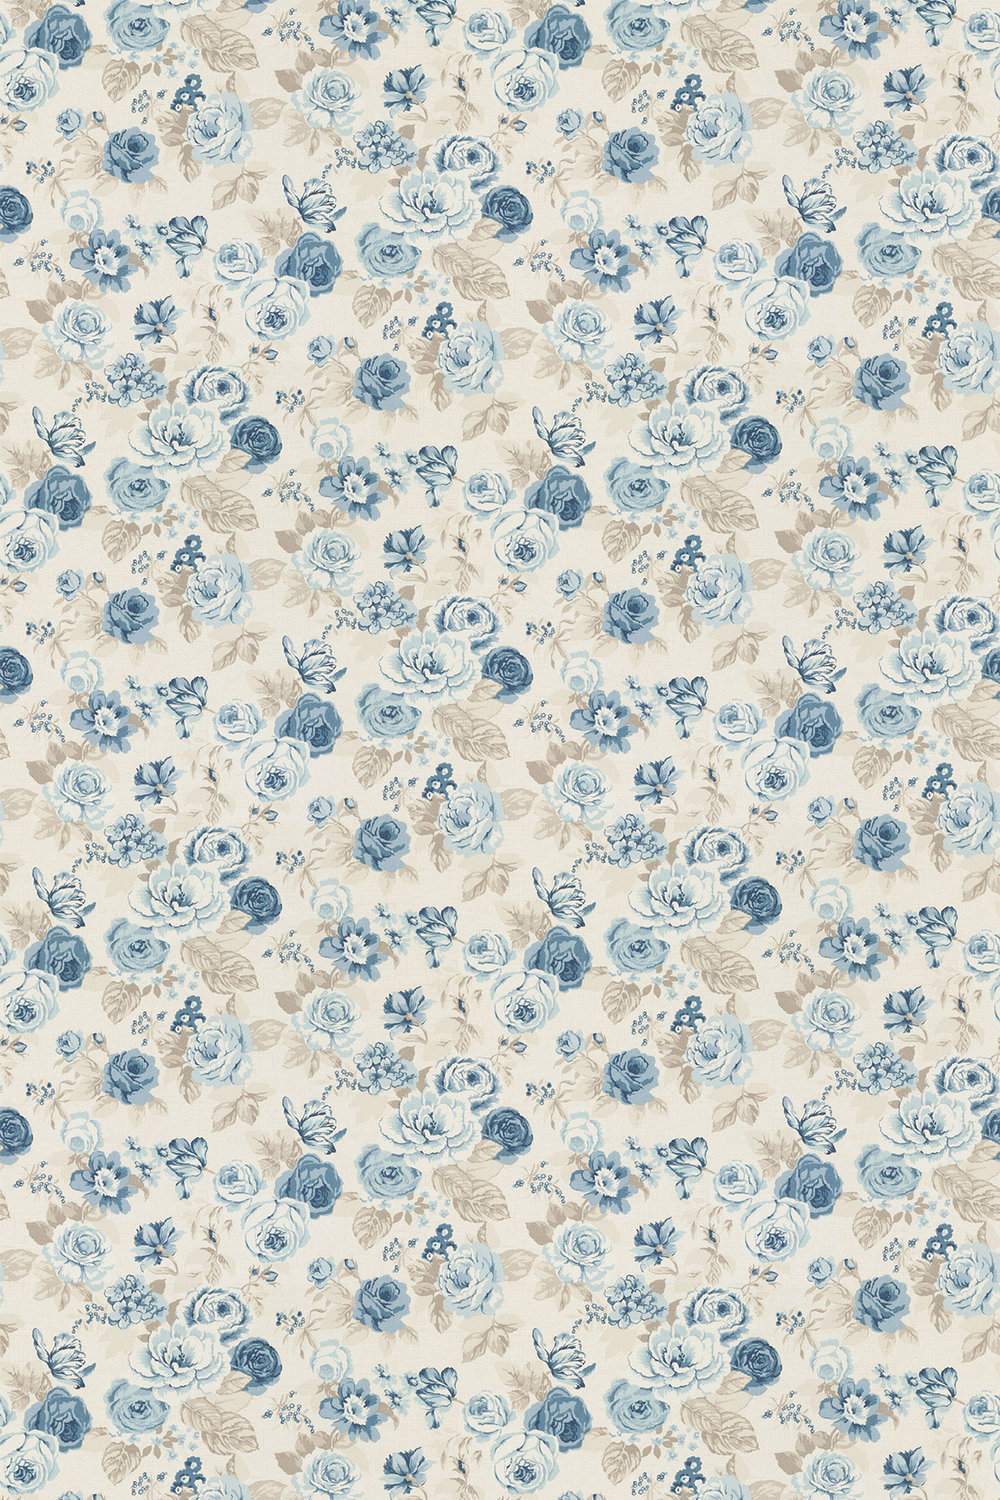 Genevieve Fabric - Chambray - by Studio G